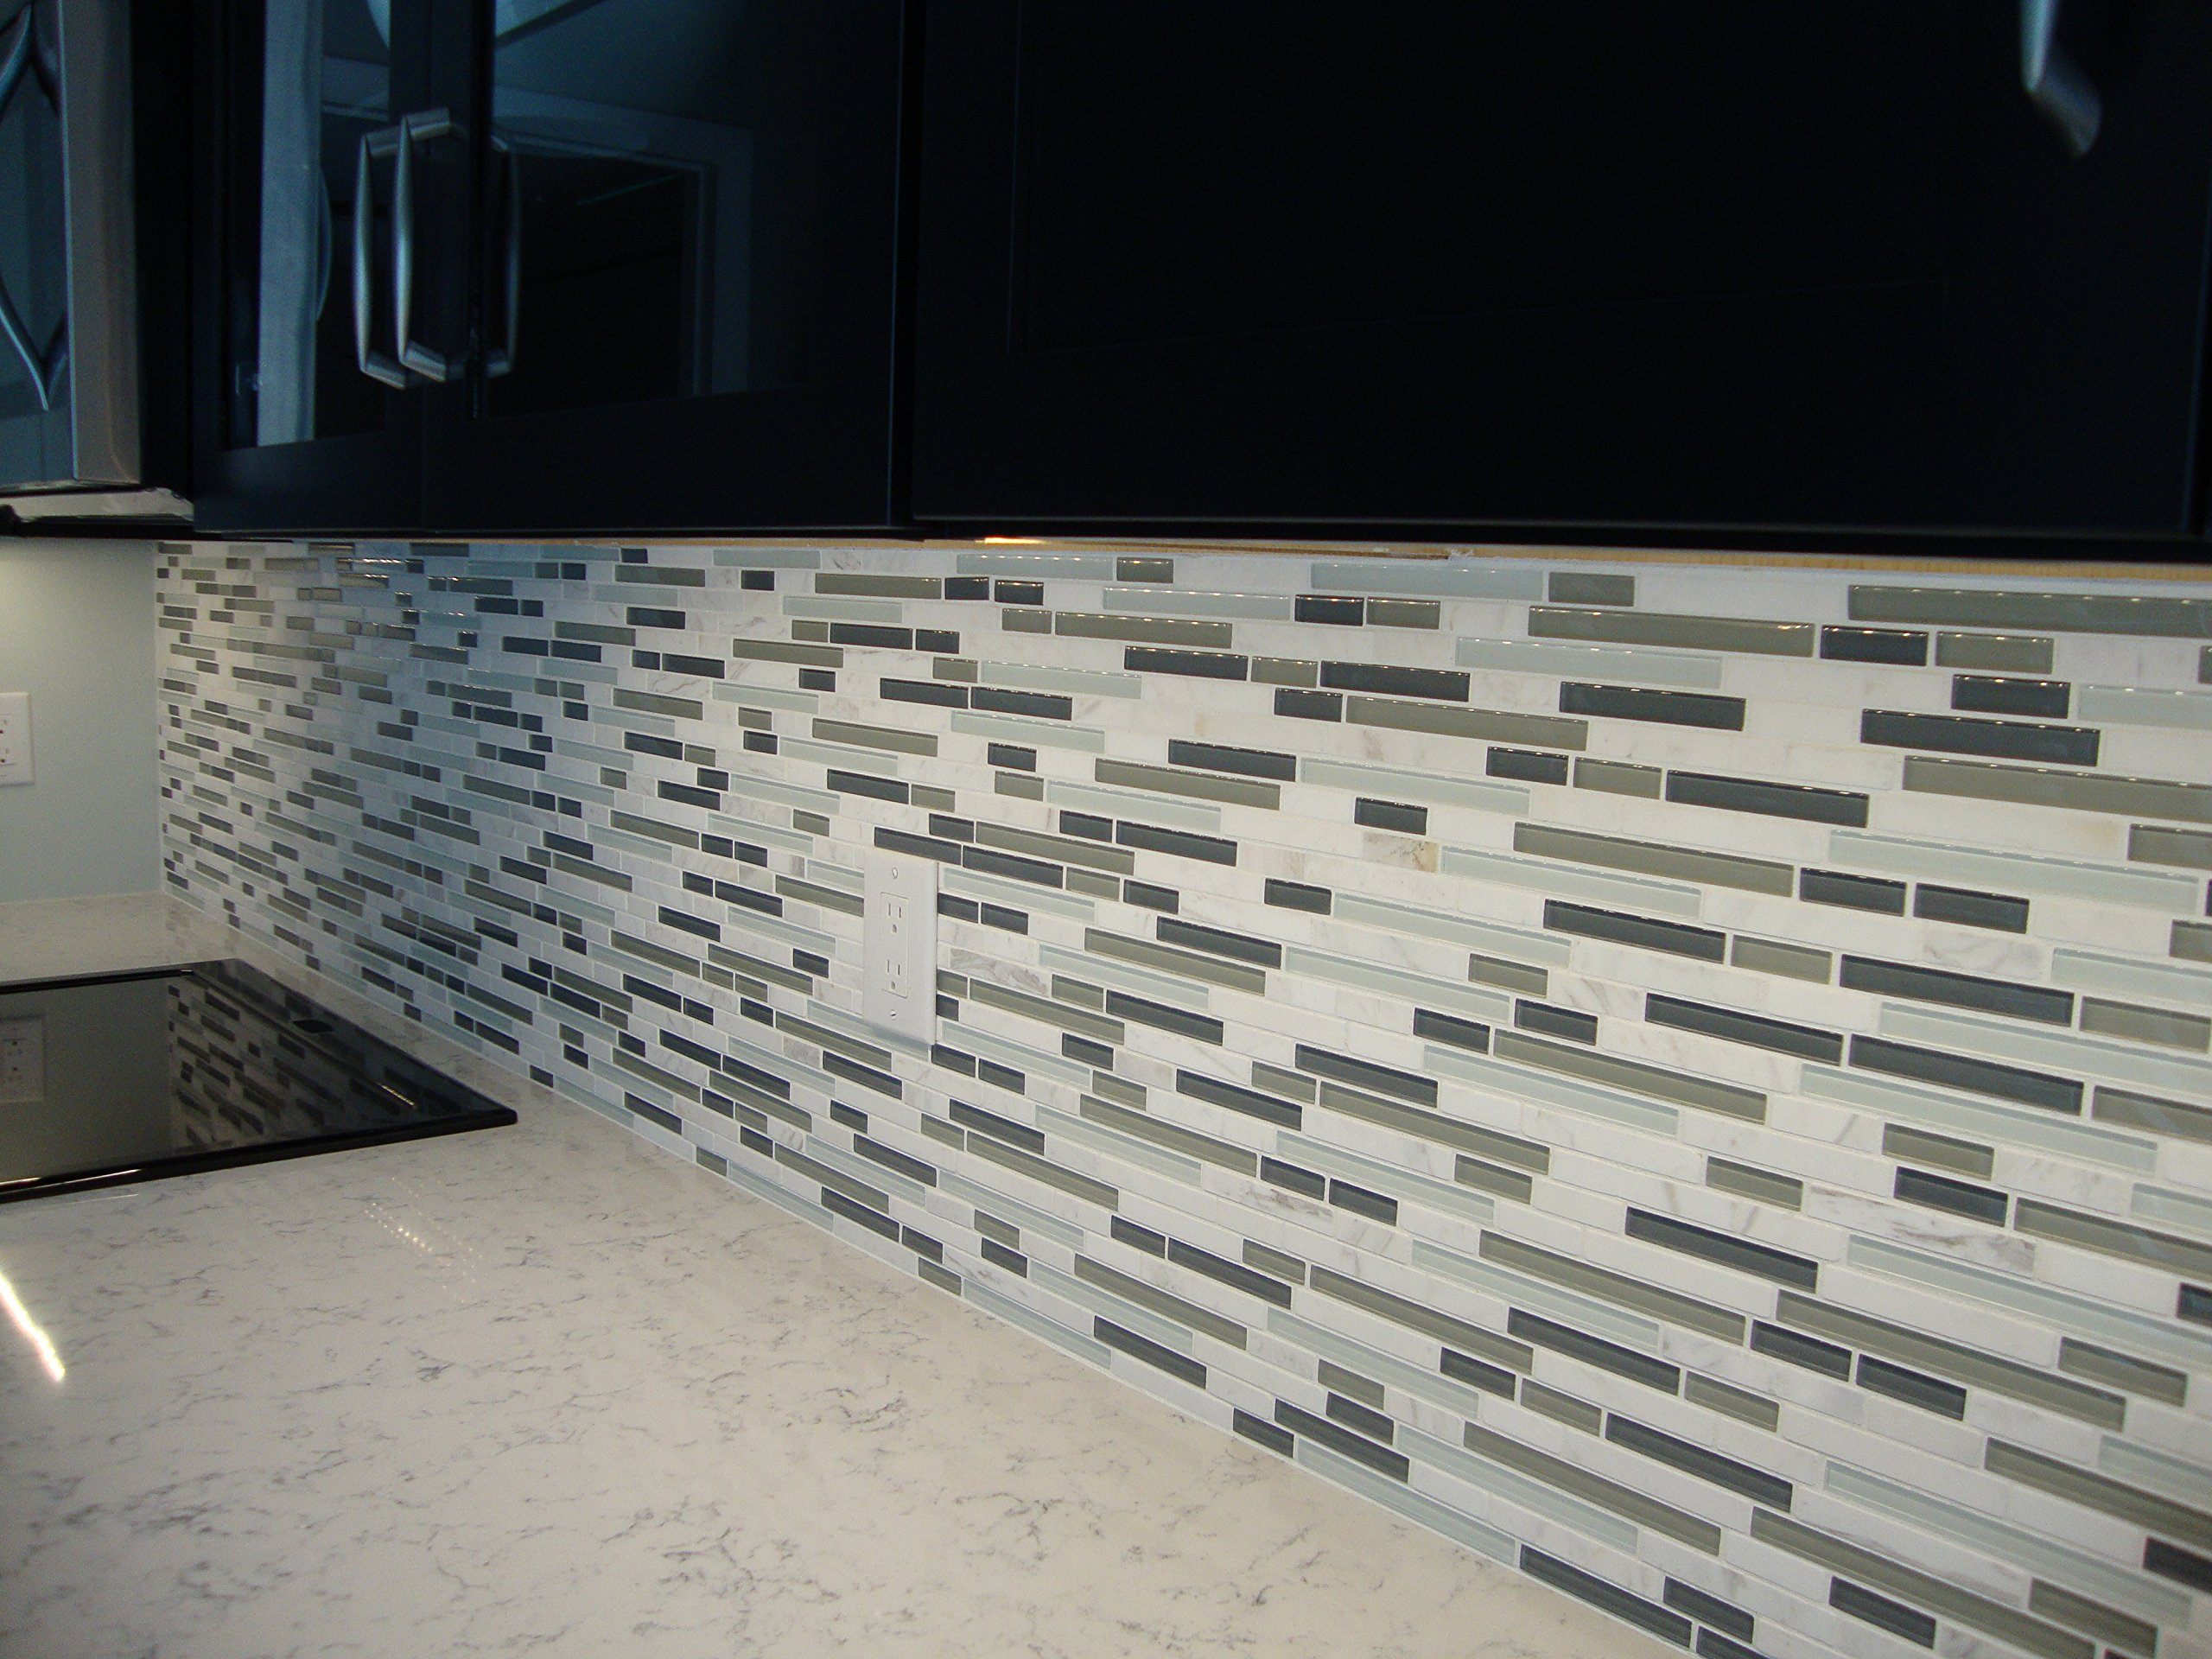 10 Sq Ft - Bliss Iceland Marble and Glass Linear Mosaic Tiles for Kitchen Backsplash or Bathroom Walls by Rocky Point Tile